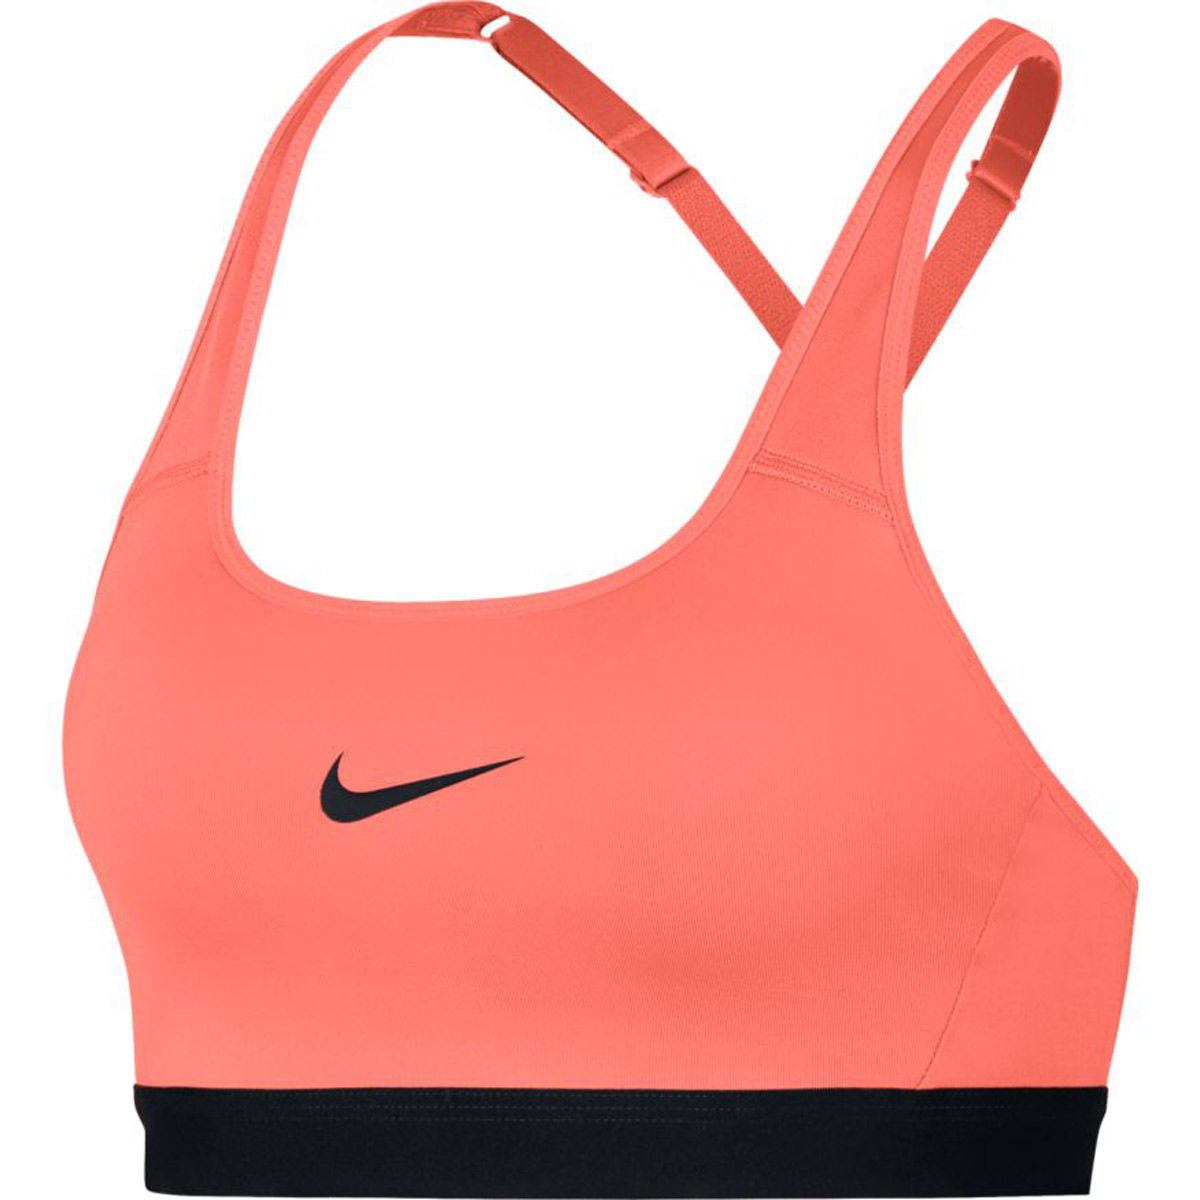 Nike Classic Strappy Womens Sports Bra